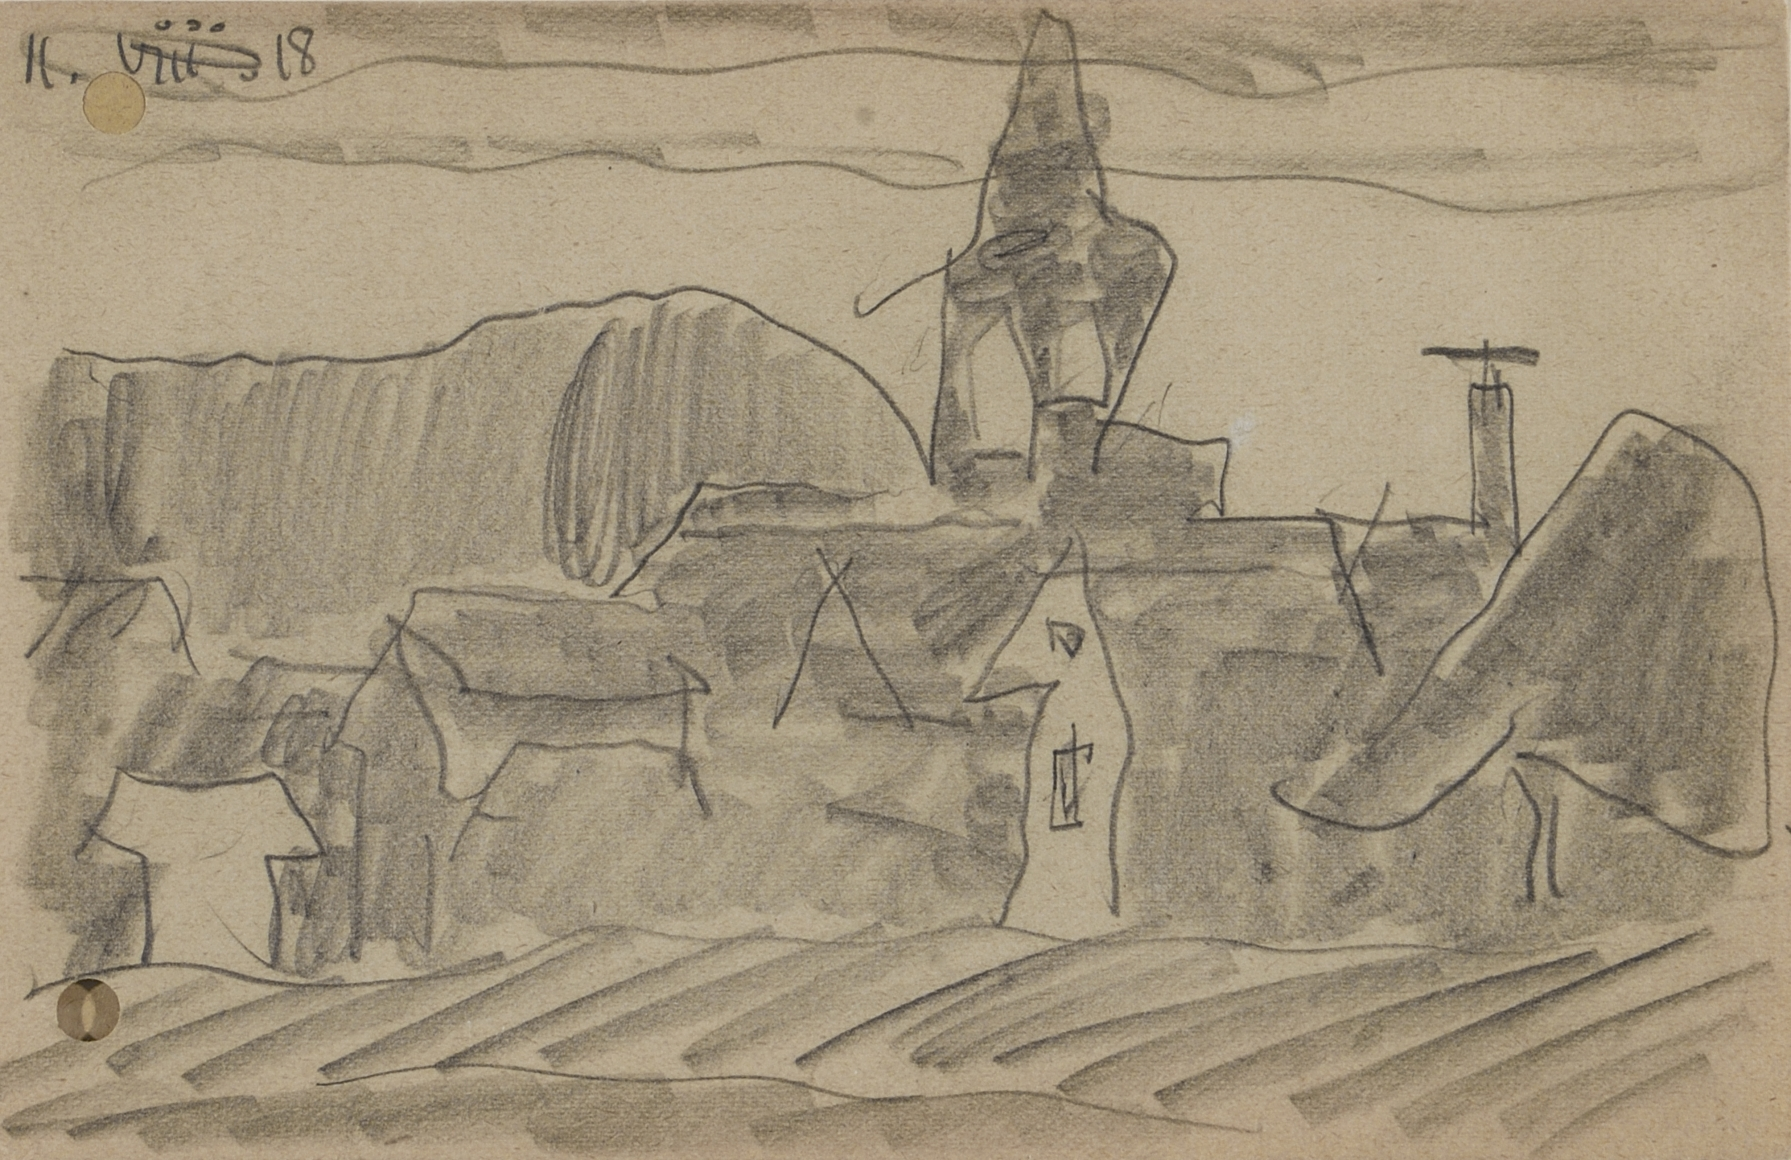 Braunlage in the Harz Mountains with St. Trinitatis Church by Lyonel Feininger